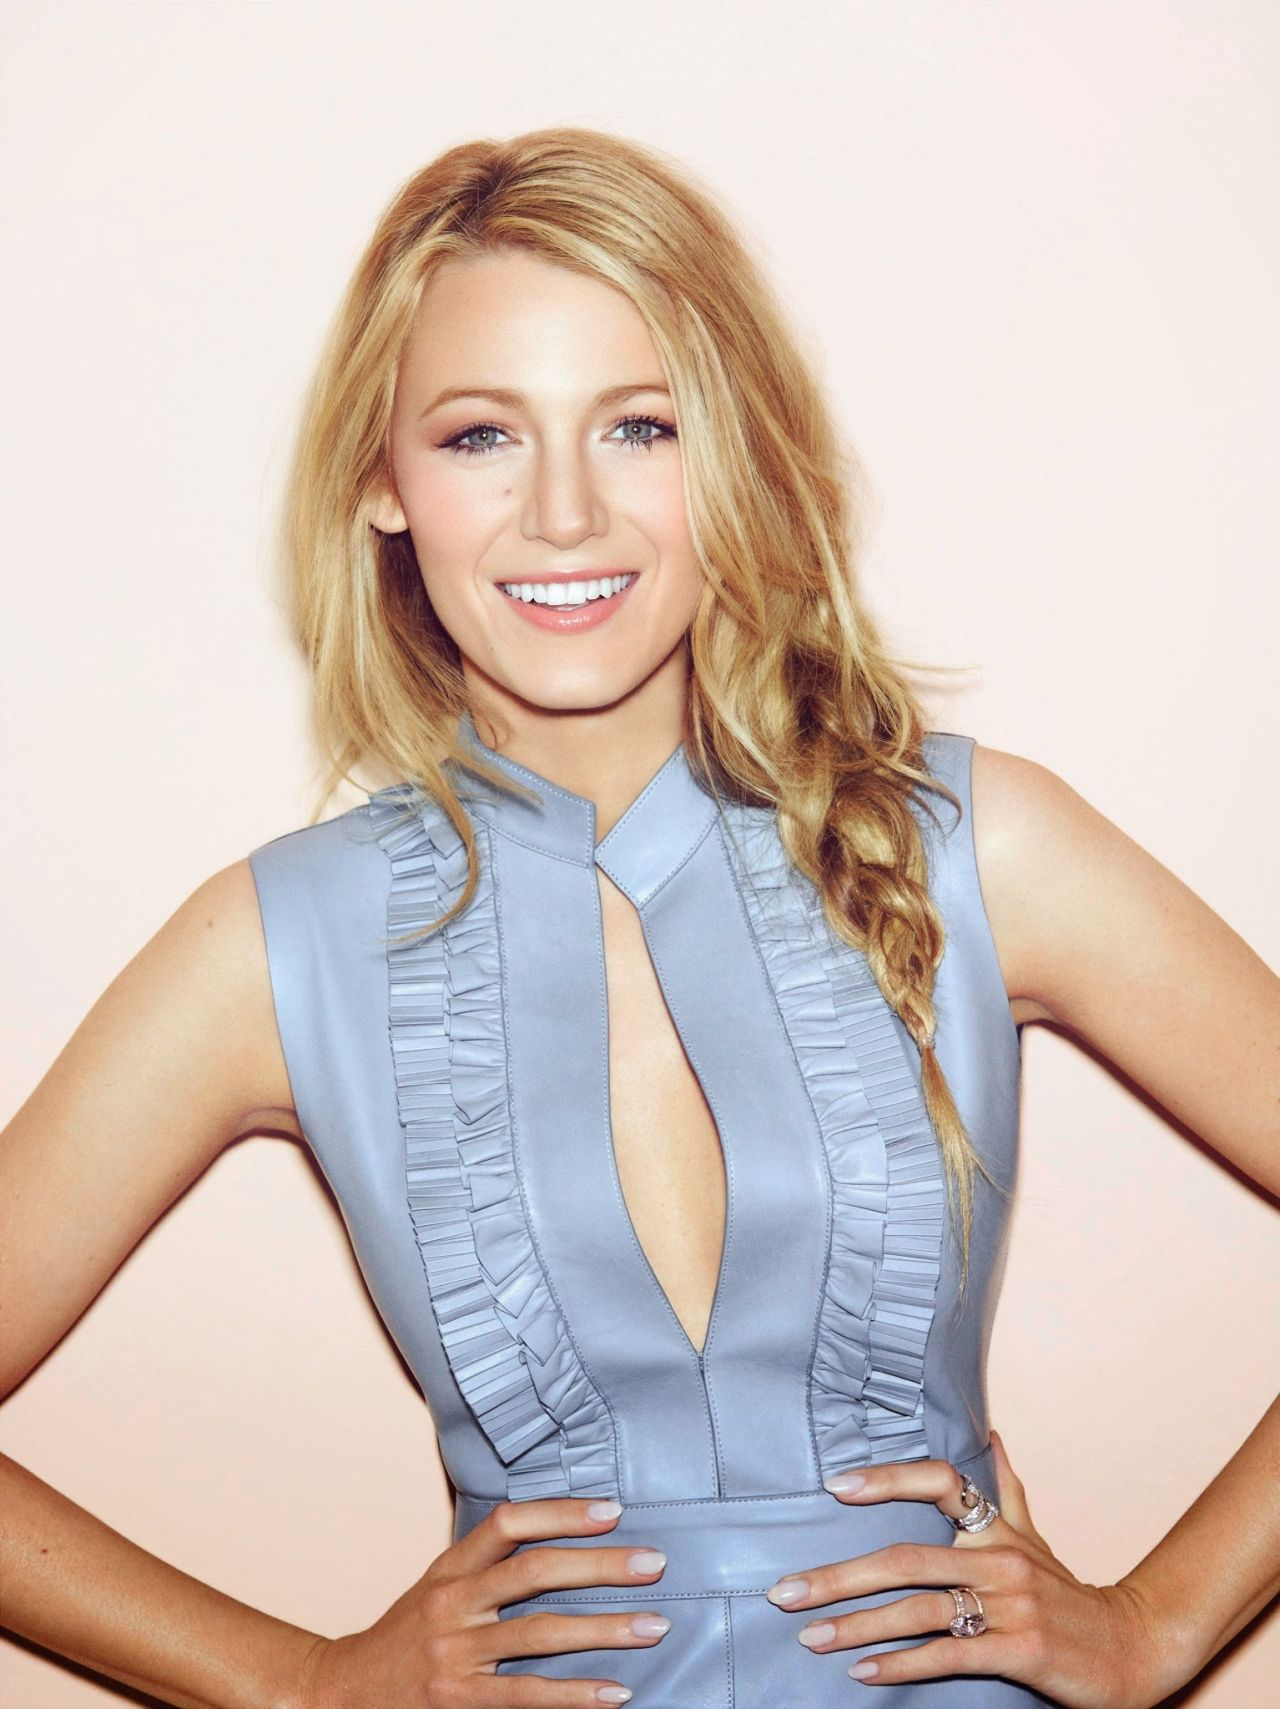 Blake Lively – Photoshoot for Gucci (2014) Blake Lively